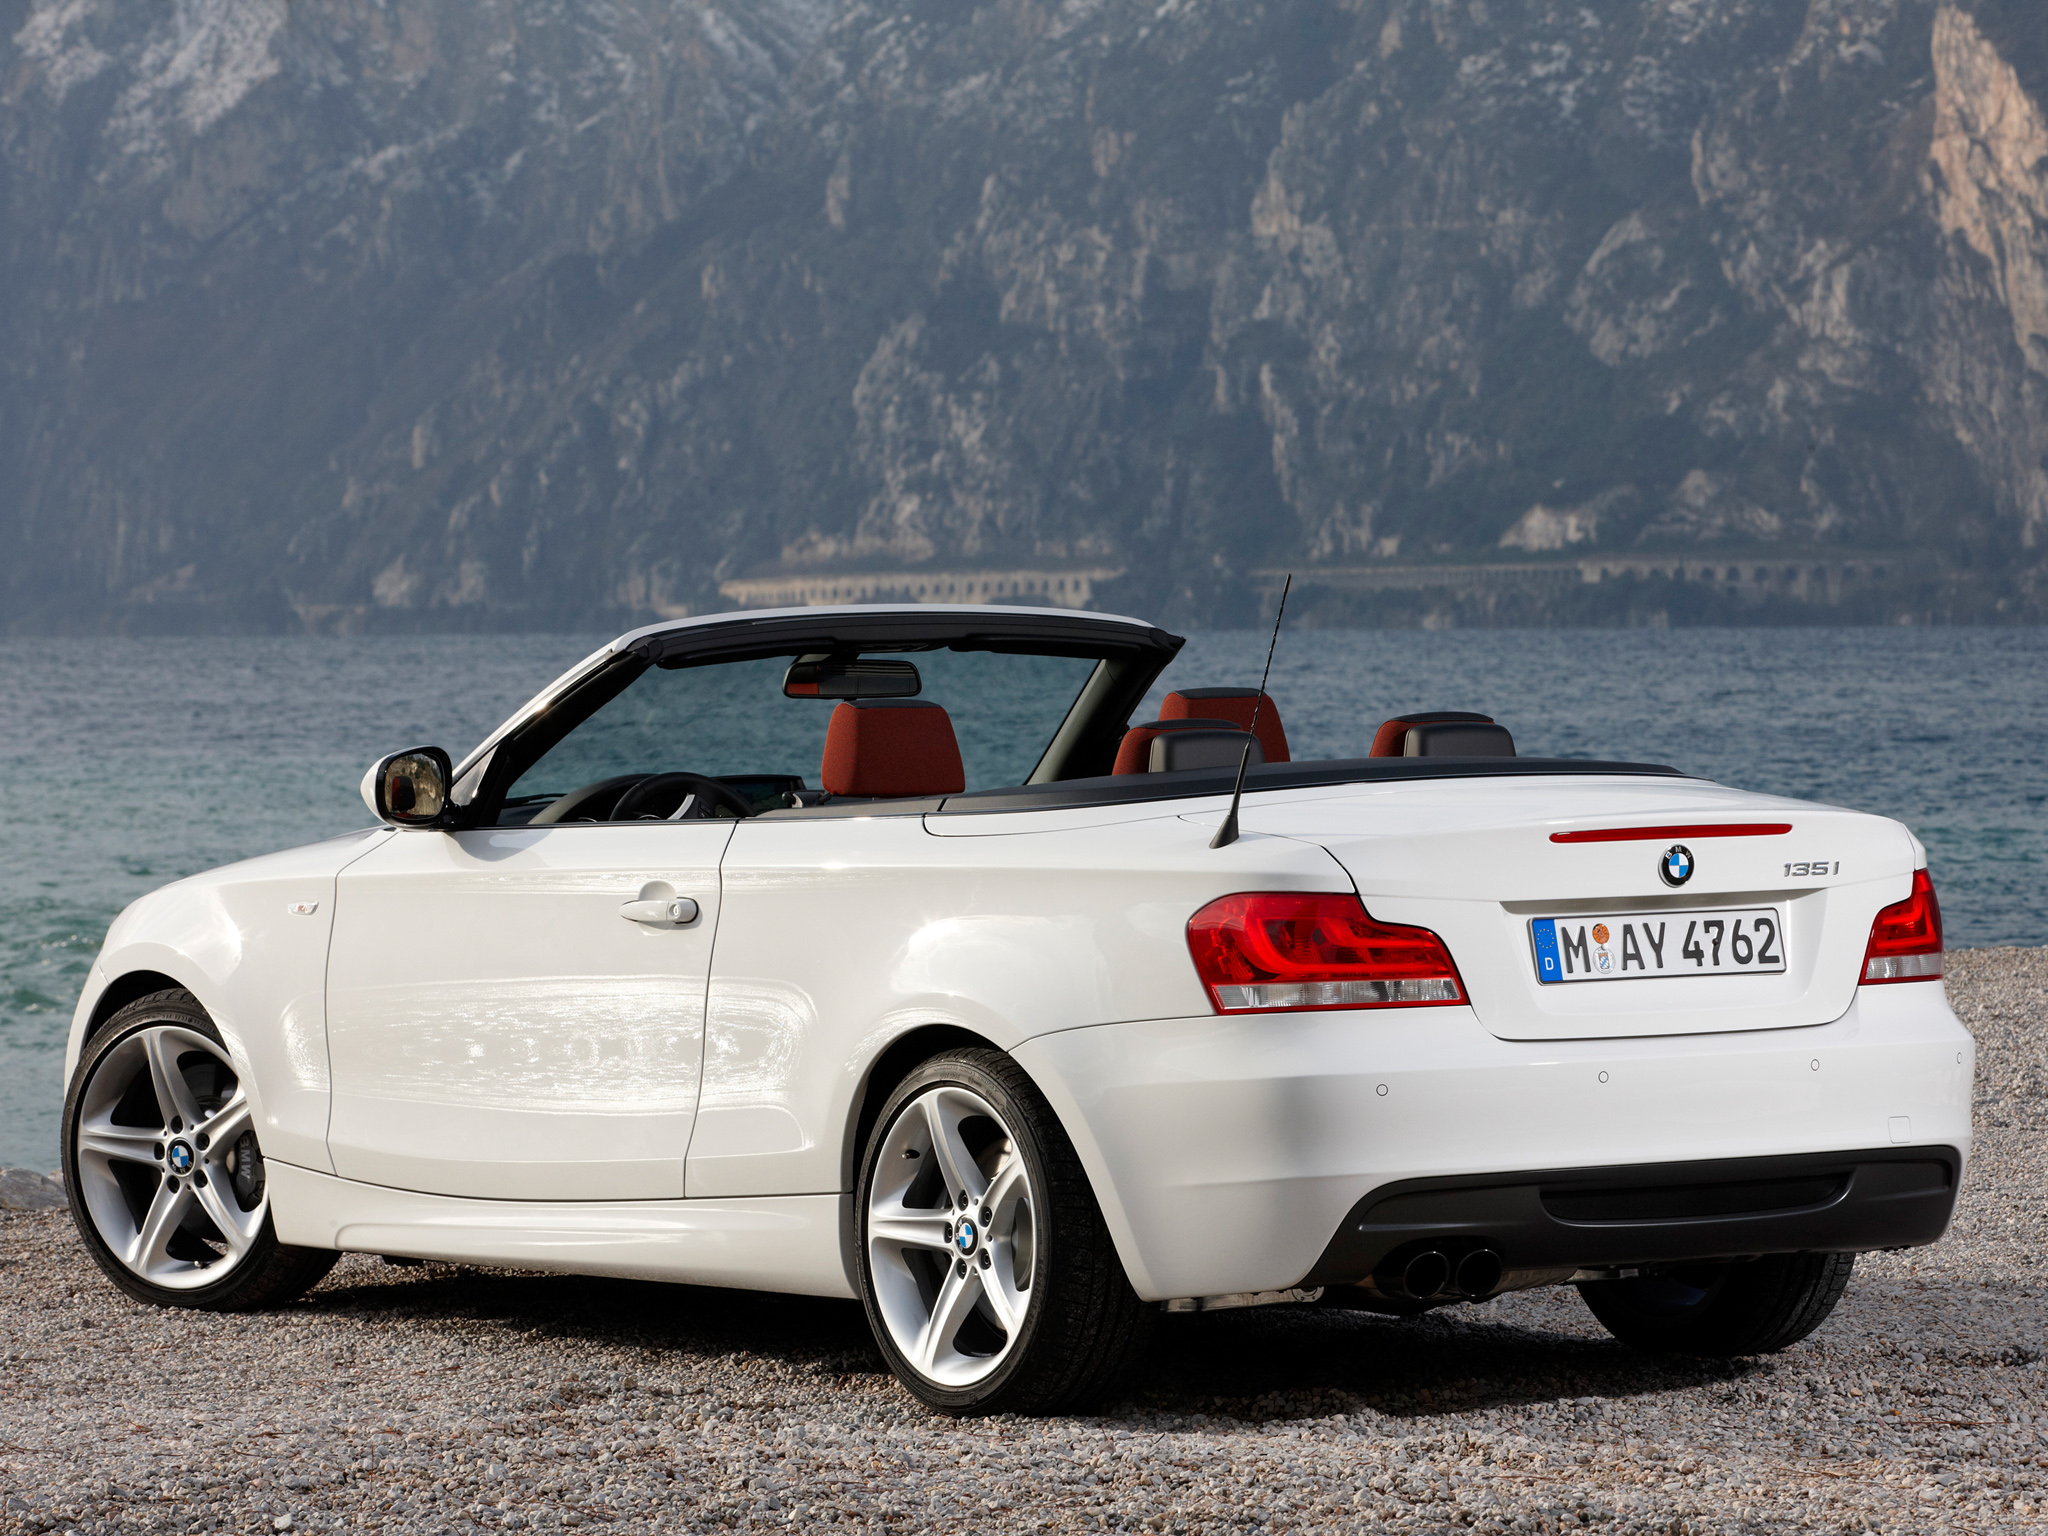 BMW 135i Cabrio E88 Wallpapers Car wallpapers HD 2048x1536